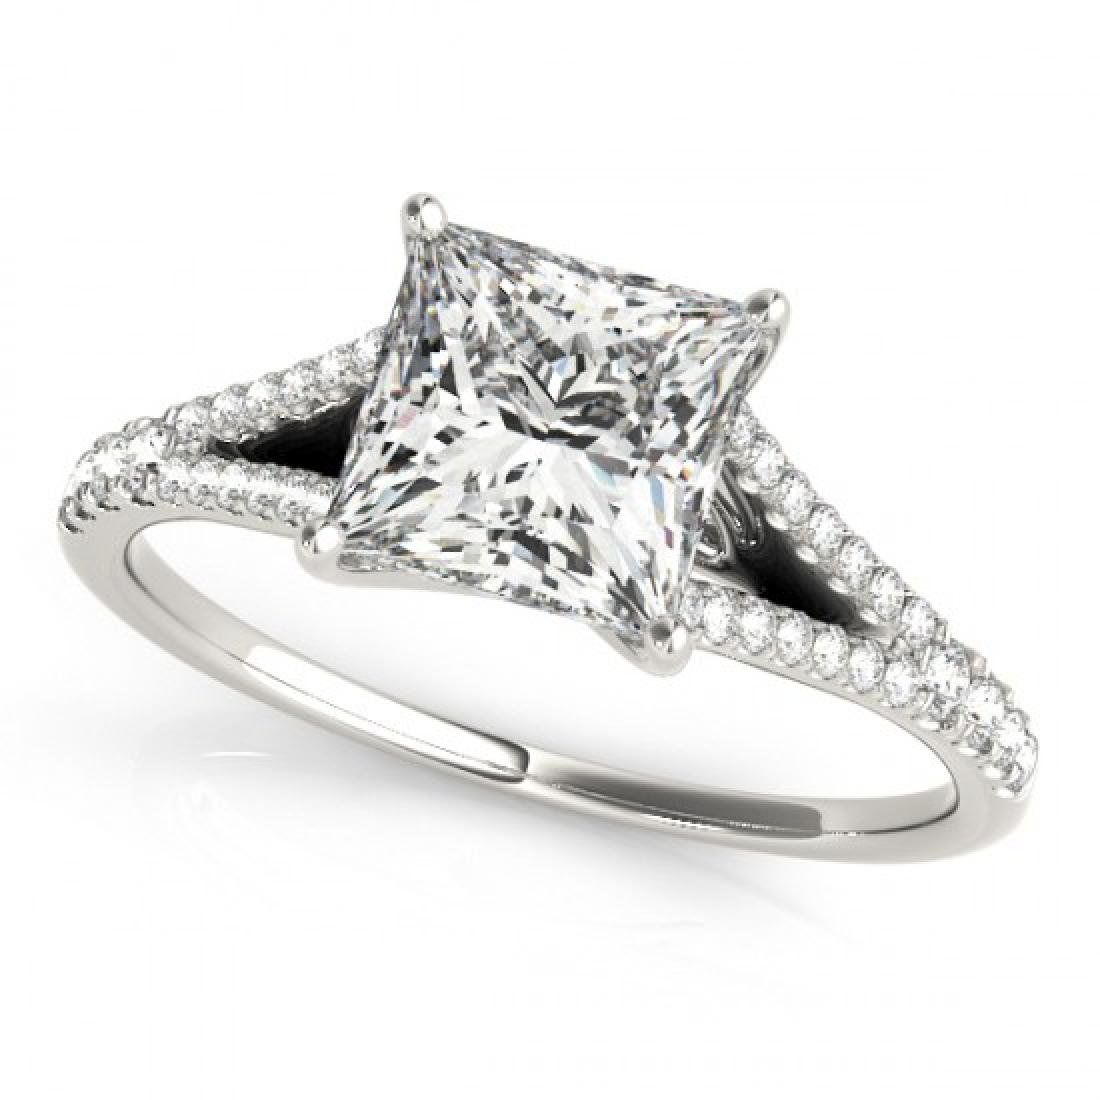 0.81 CTW Certified VS/SI Princess Diamond Solitaire